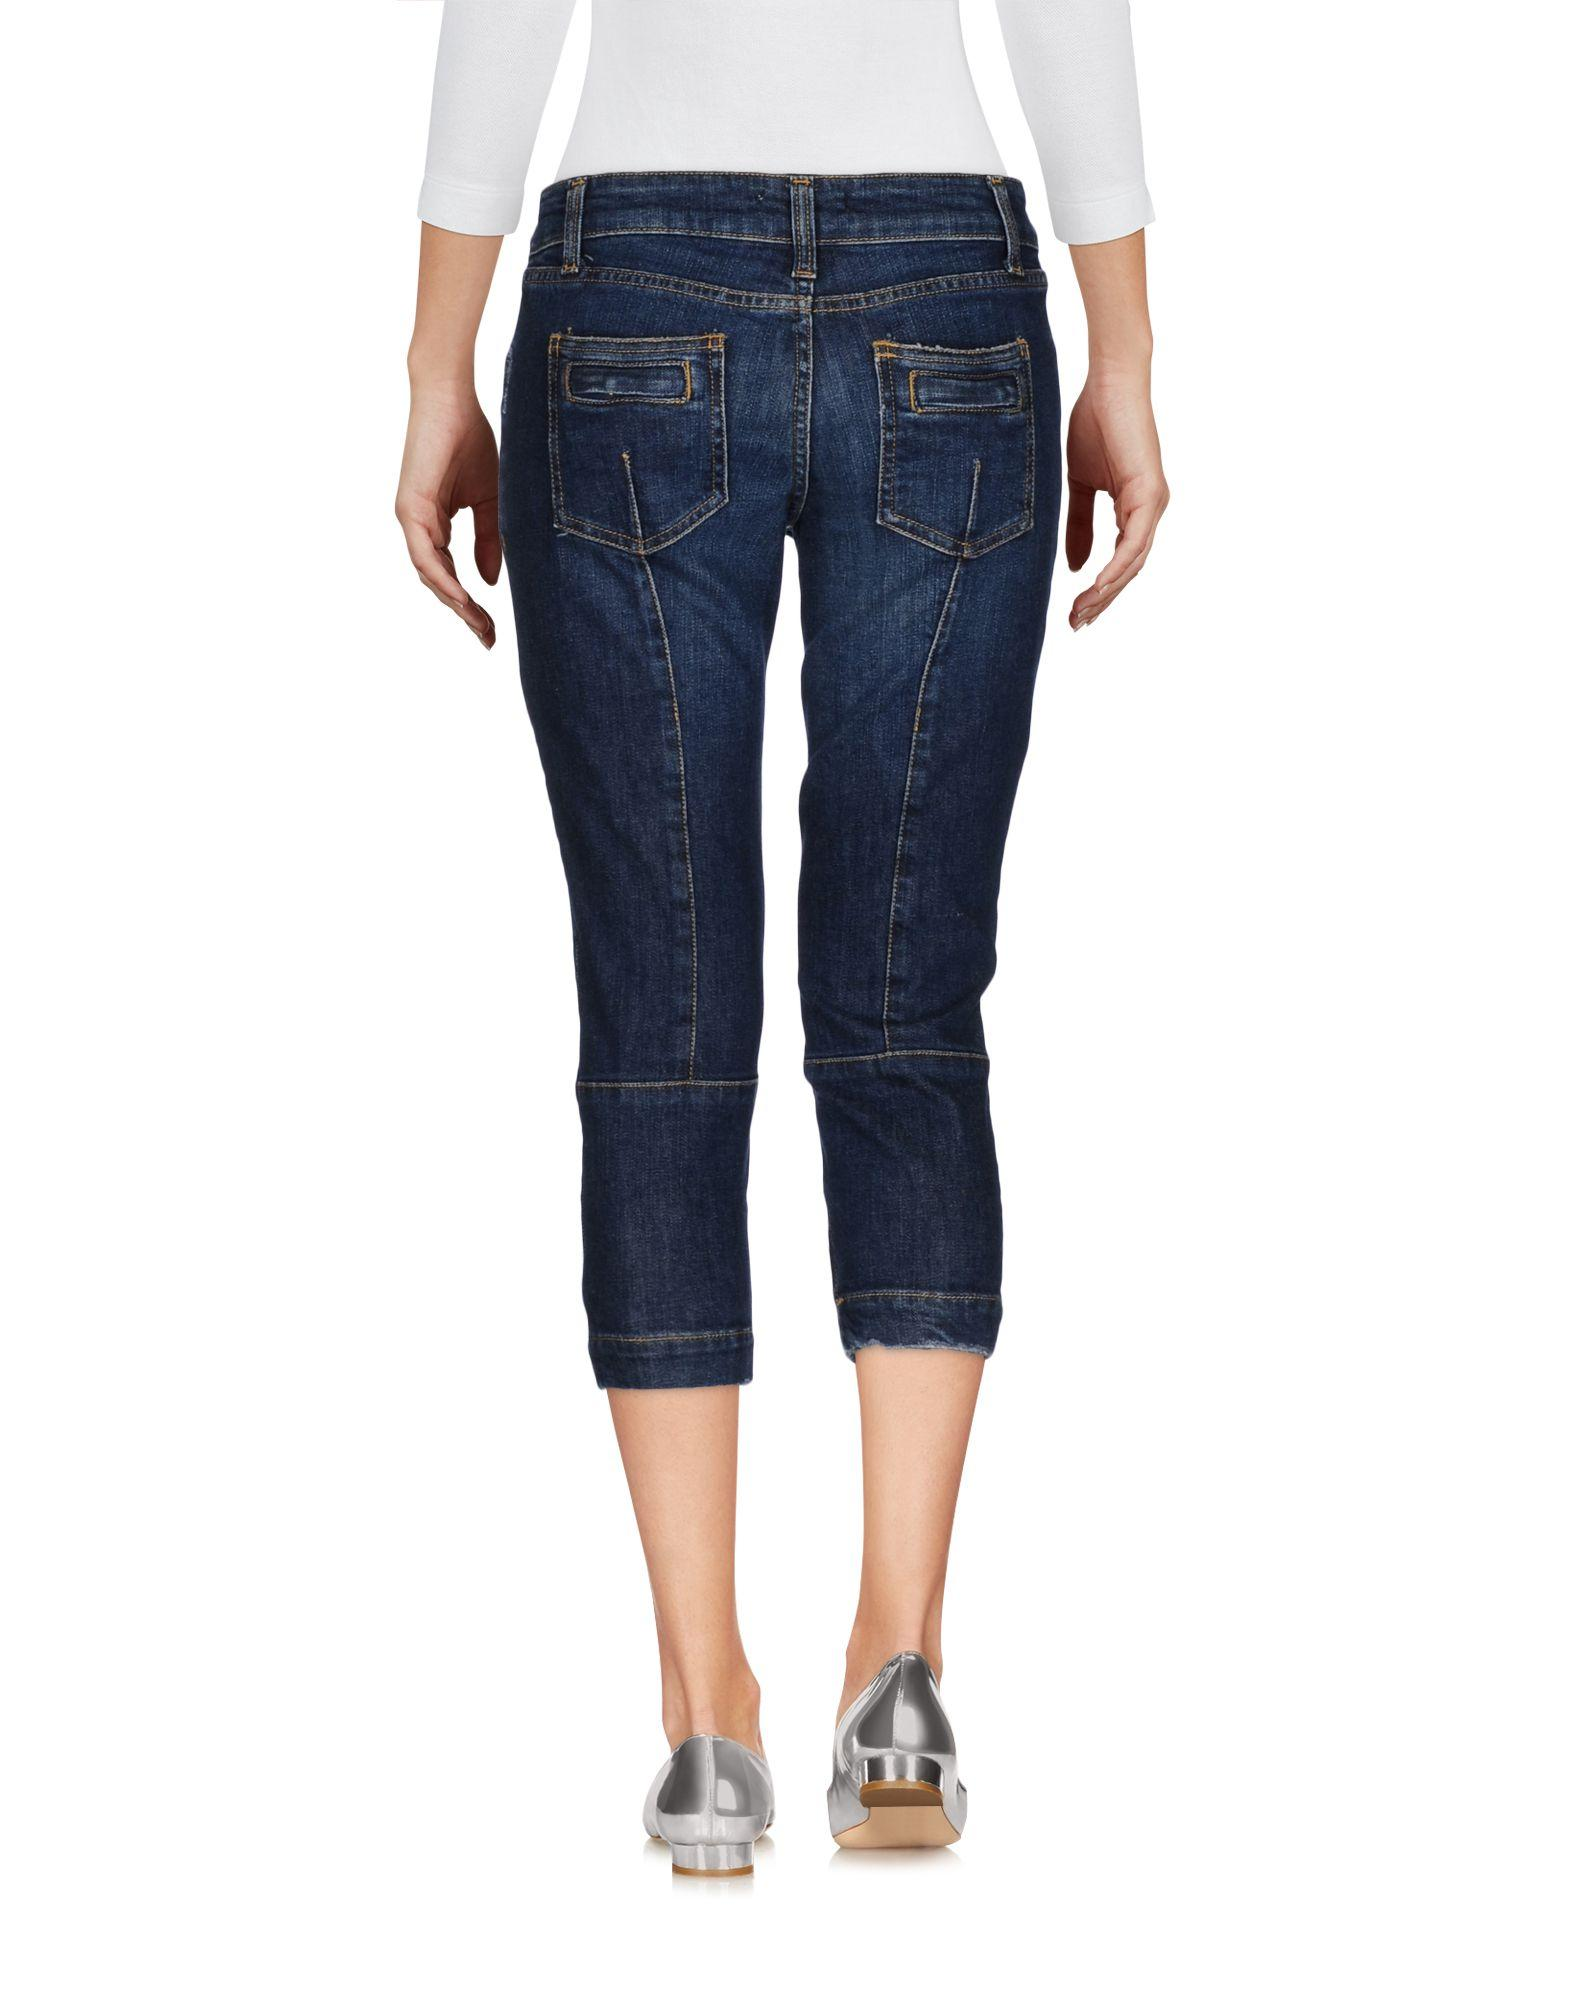 Denim - Pantalon En Denim Castellani gnIryQcDlp